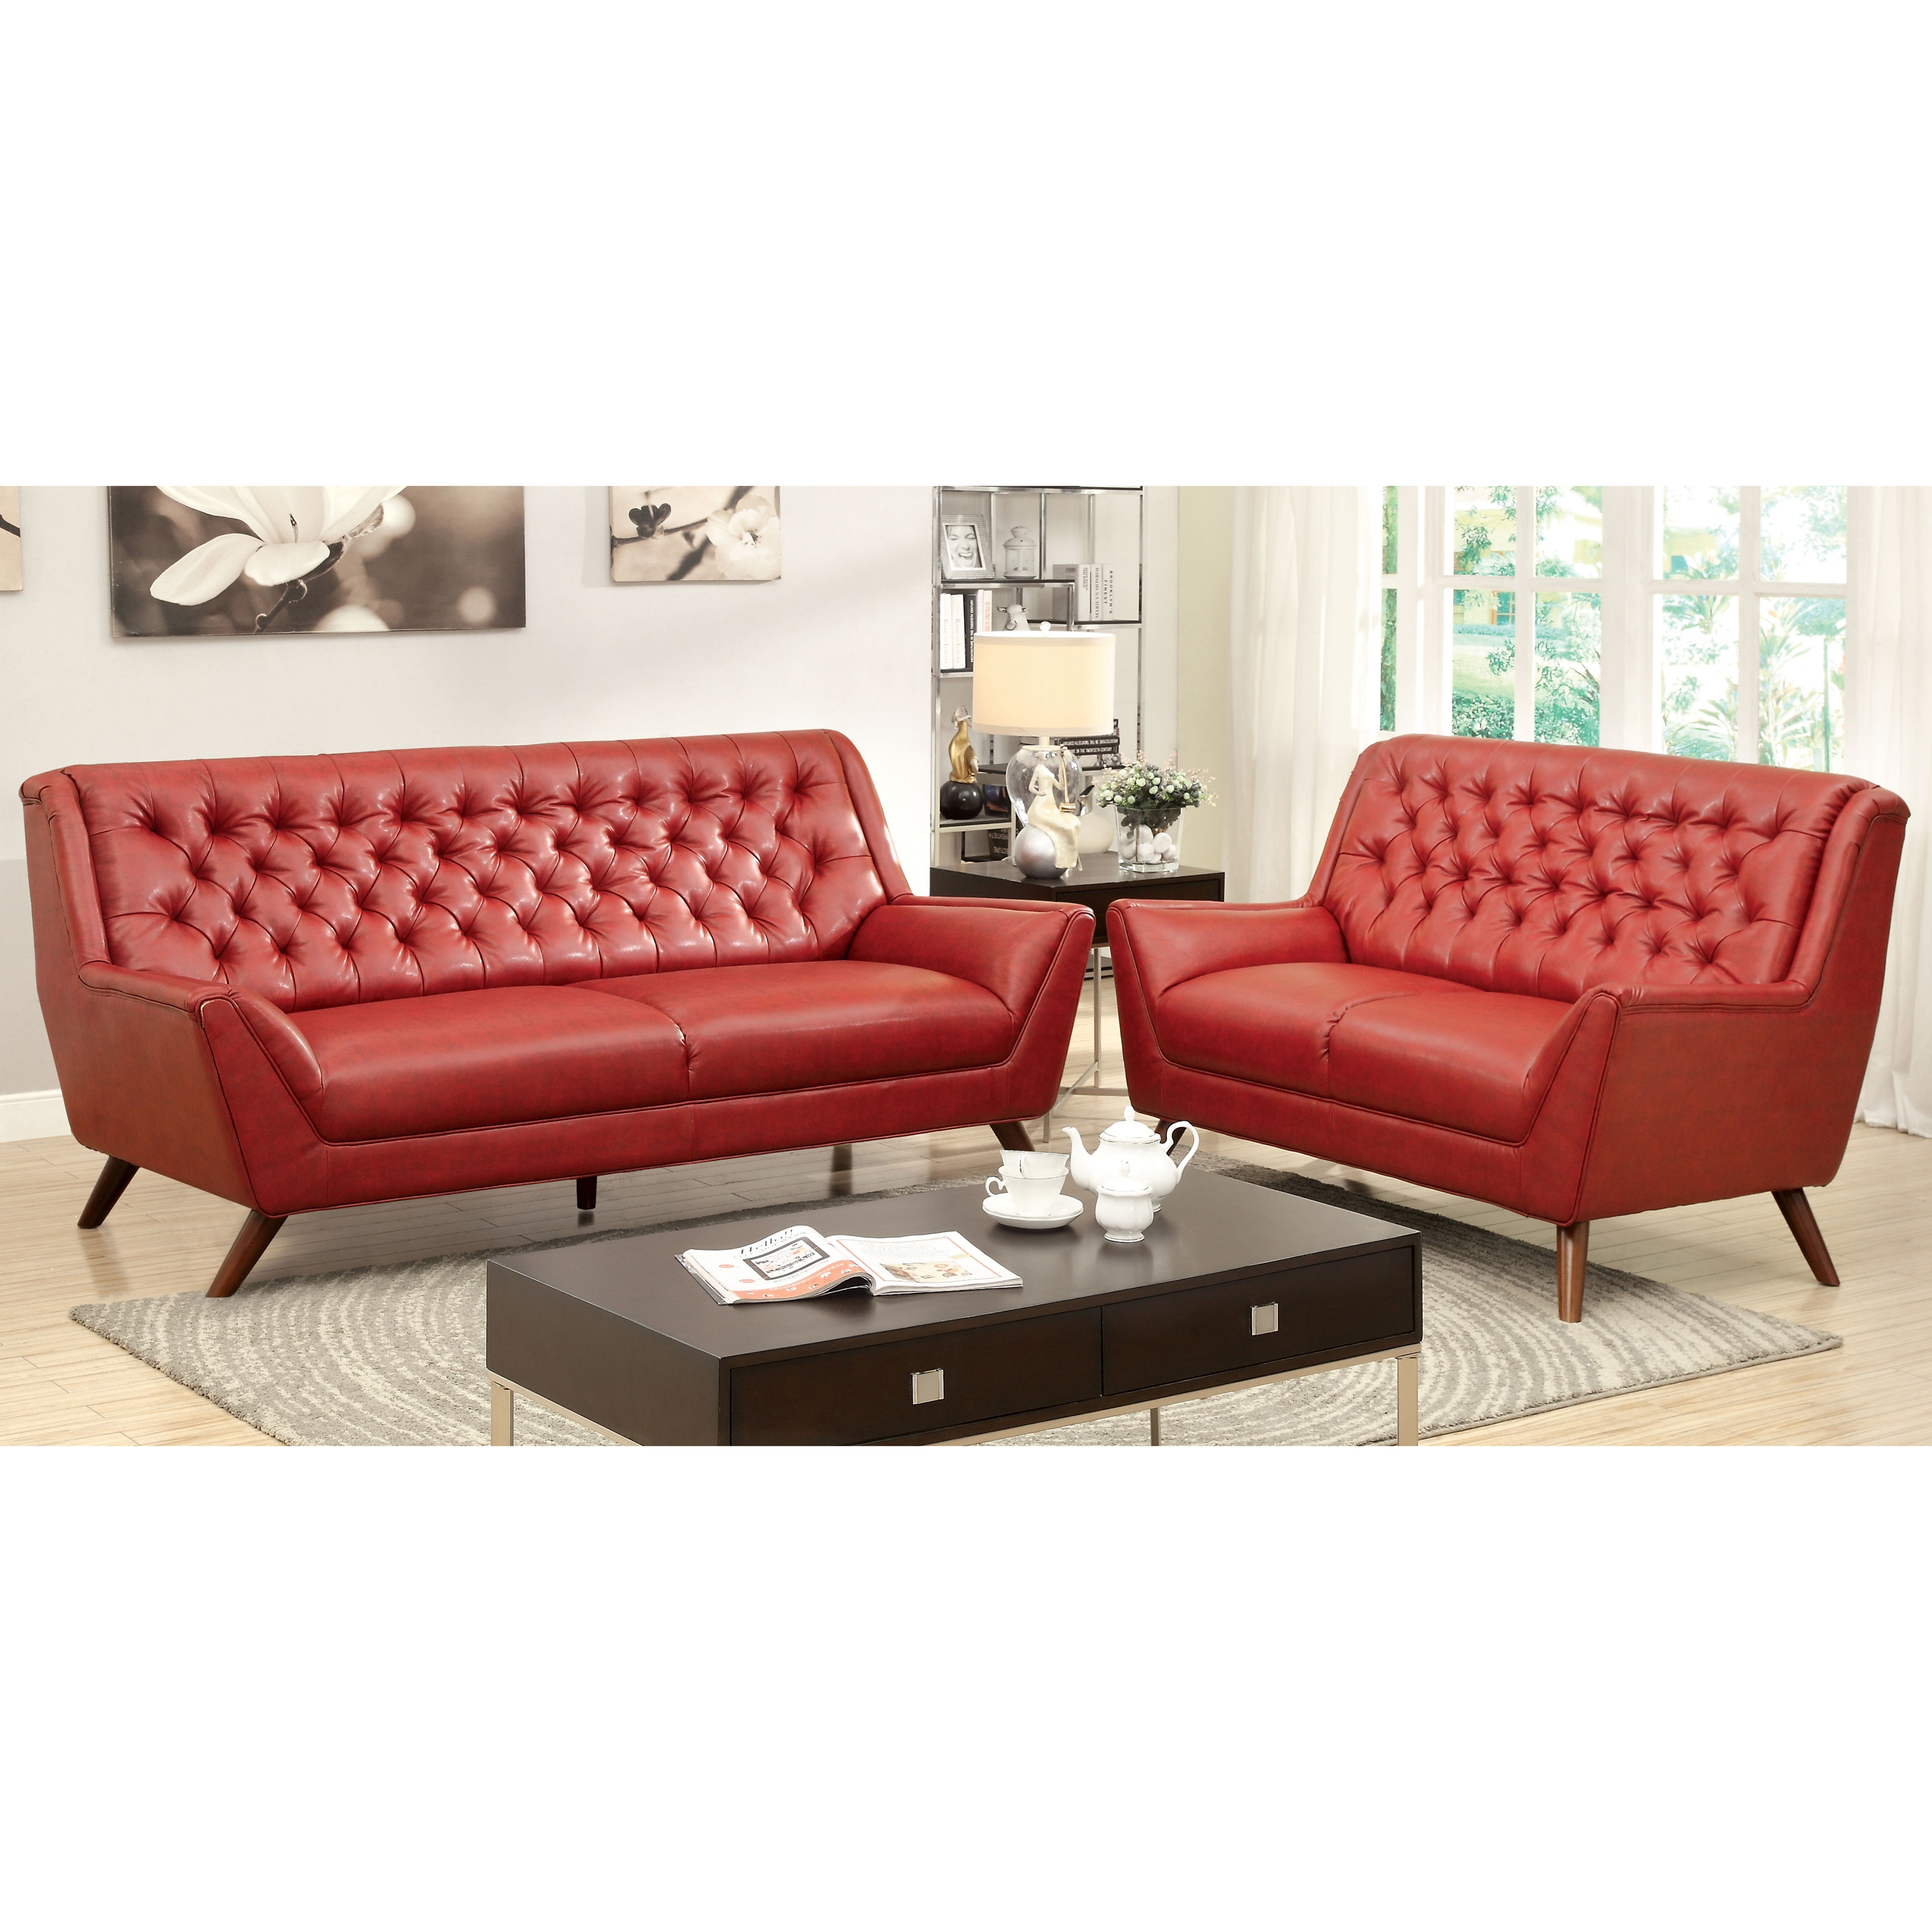 Furniture Of America Valentino 3 Piece Mid Century Modern Bonded Leather  Sofa Set   Free Shipping Today   Overstock.com   16933888